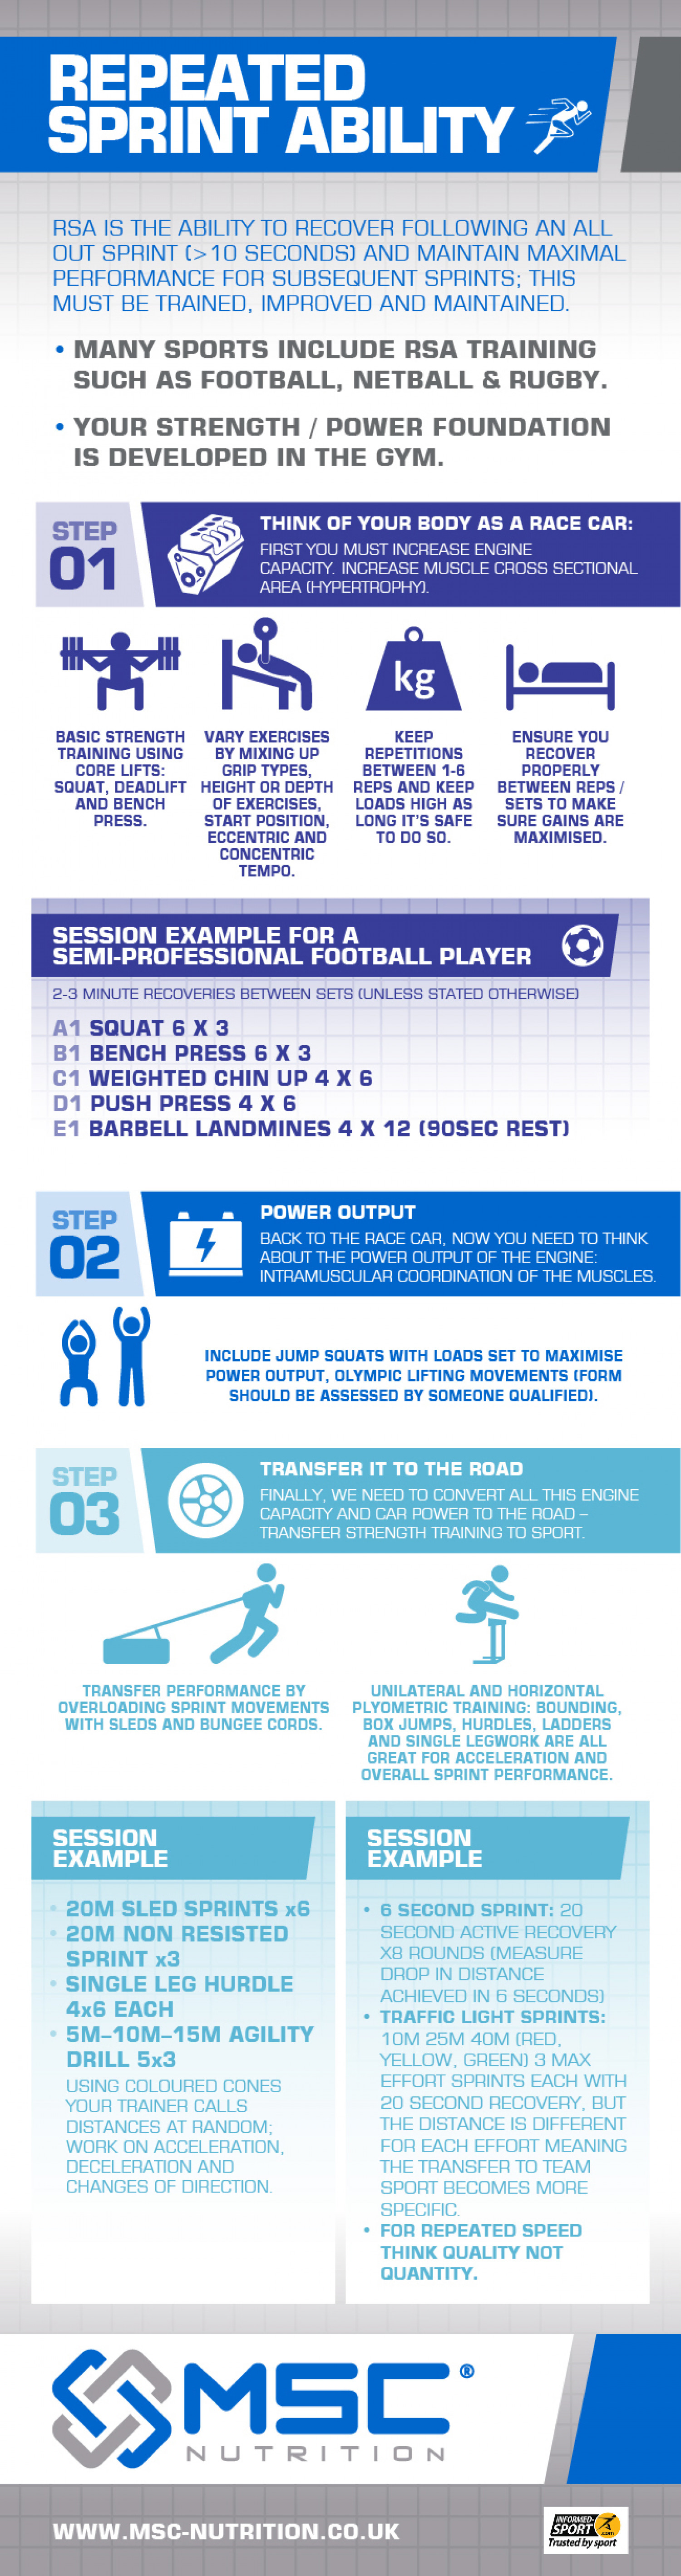 Repeated Sprint Ability Infographic